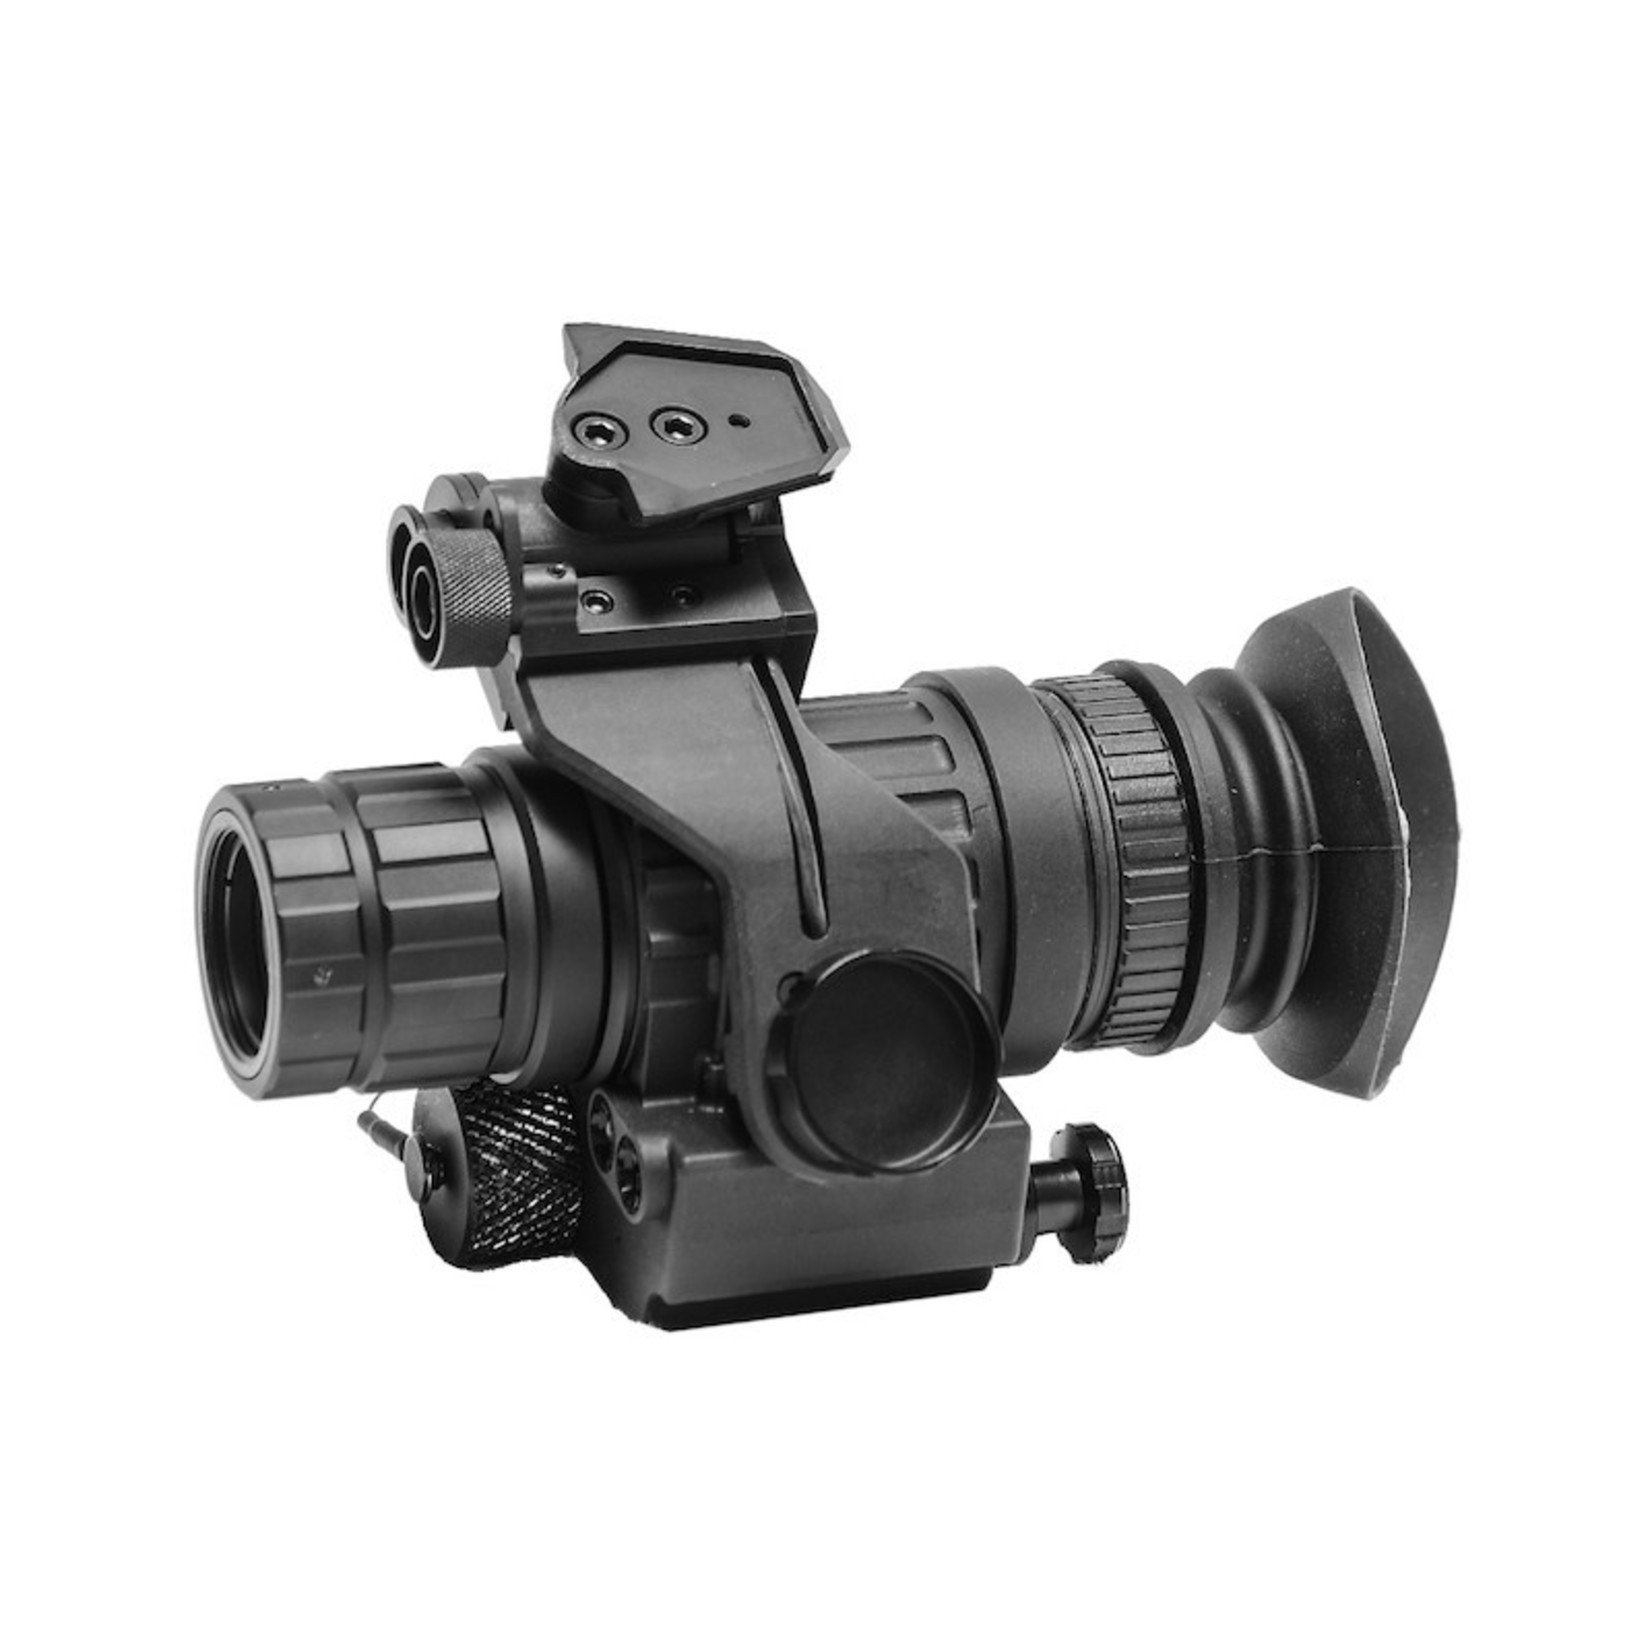 GSCI J-ARM ADAPTOR INTERFACE FOR NVG MONOCULAR